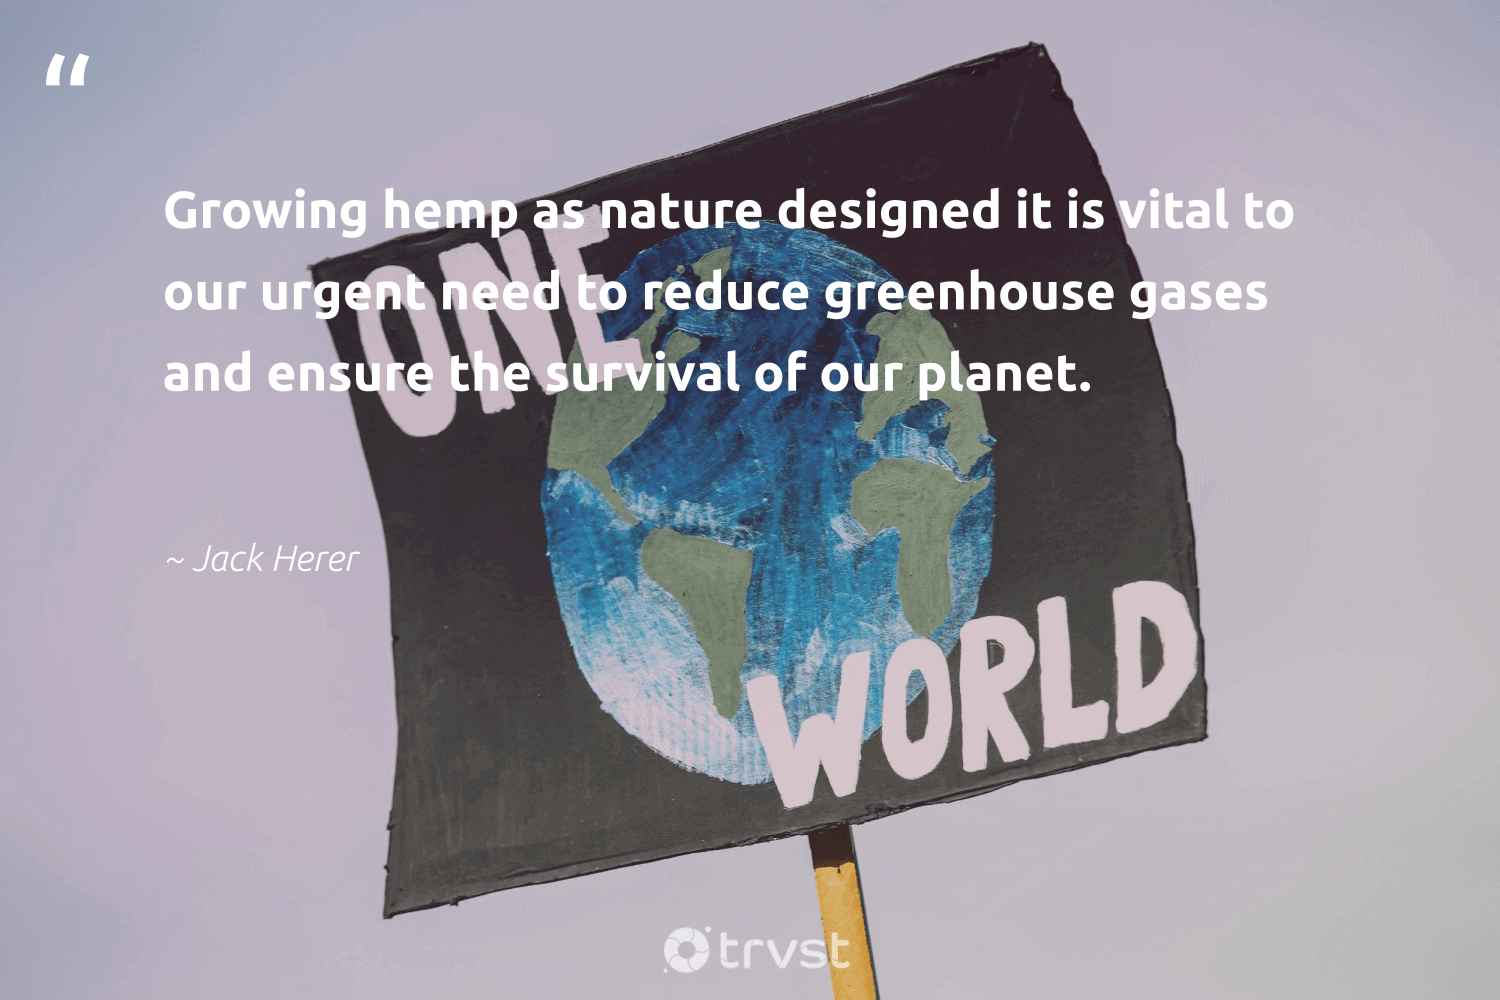 """""""Growing hemp as nature designed it is vital to our urgent need to reduce greenhouse gases and ensure the survival of our planet.""""  - Jack Herer #trvst #quotes #reduce #nature #planet #mothernature #recycled #climatechangeisreal #eco #bethechange #environment #upcycle"""